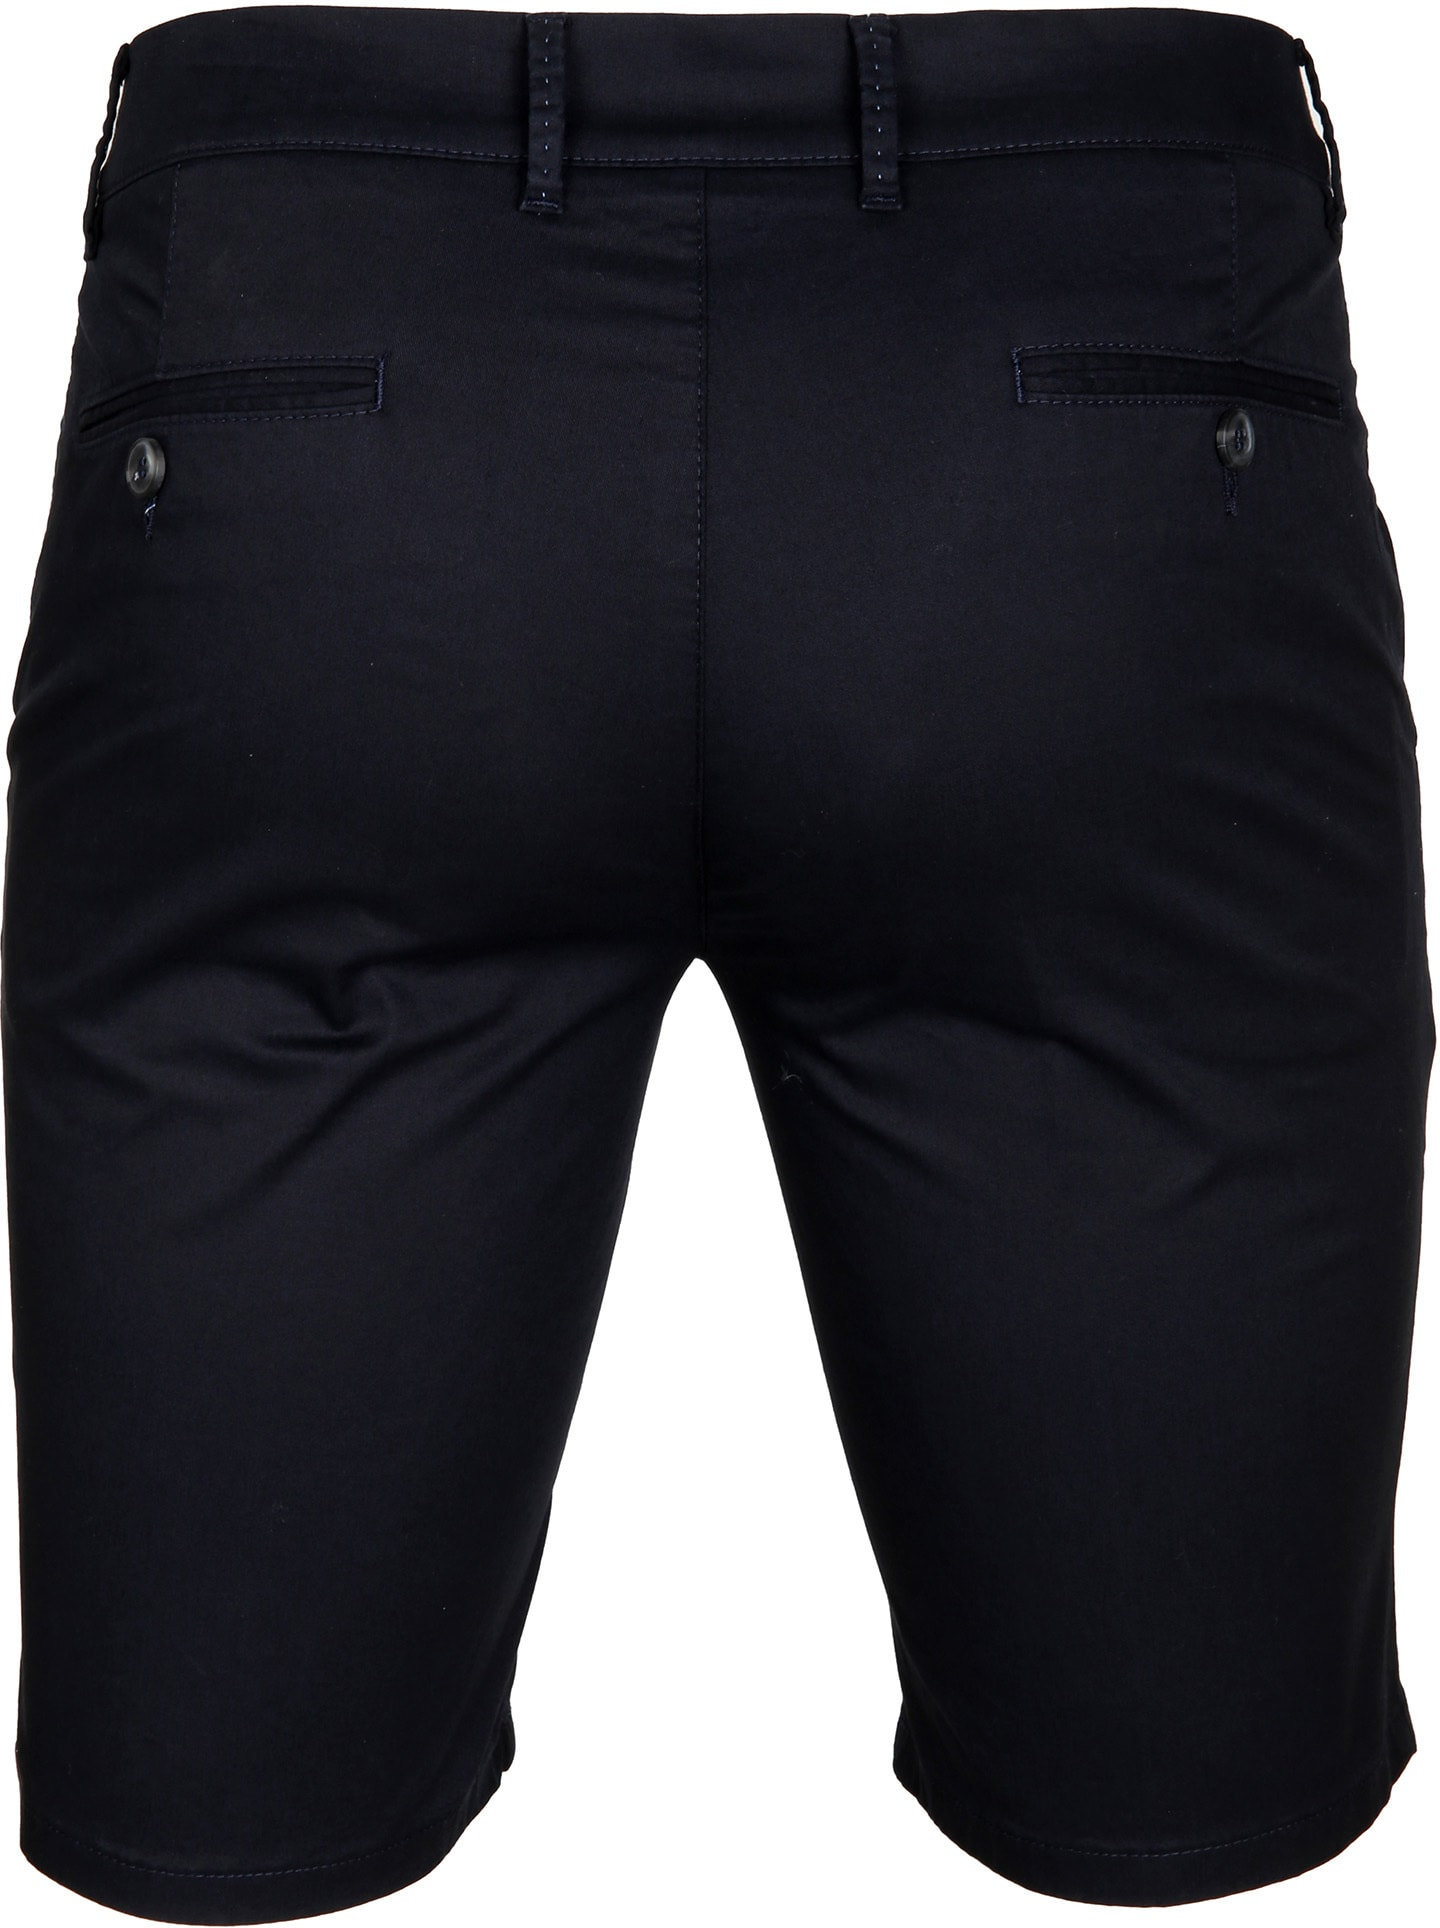 Suitable Chino Short Navy foto 2